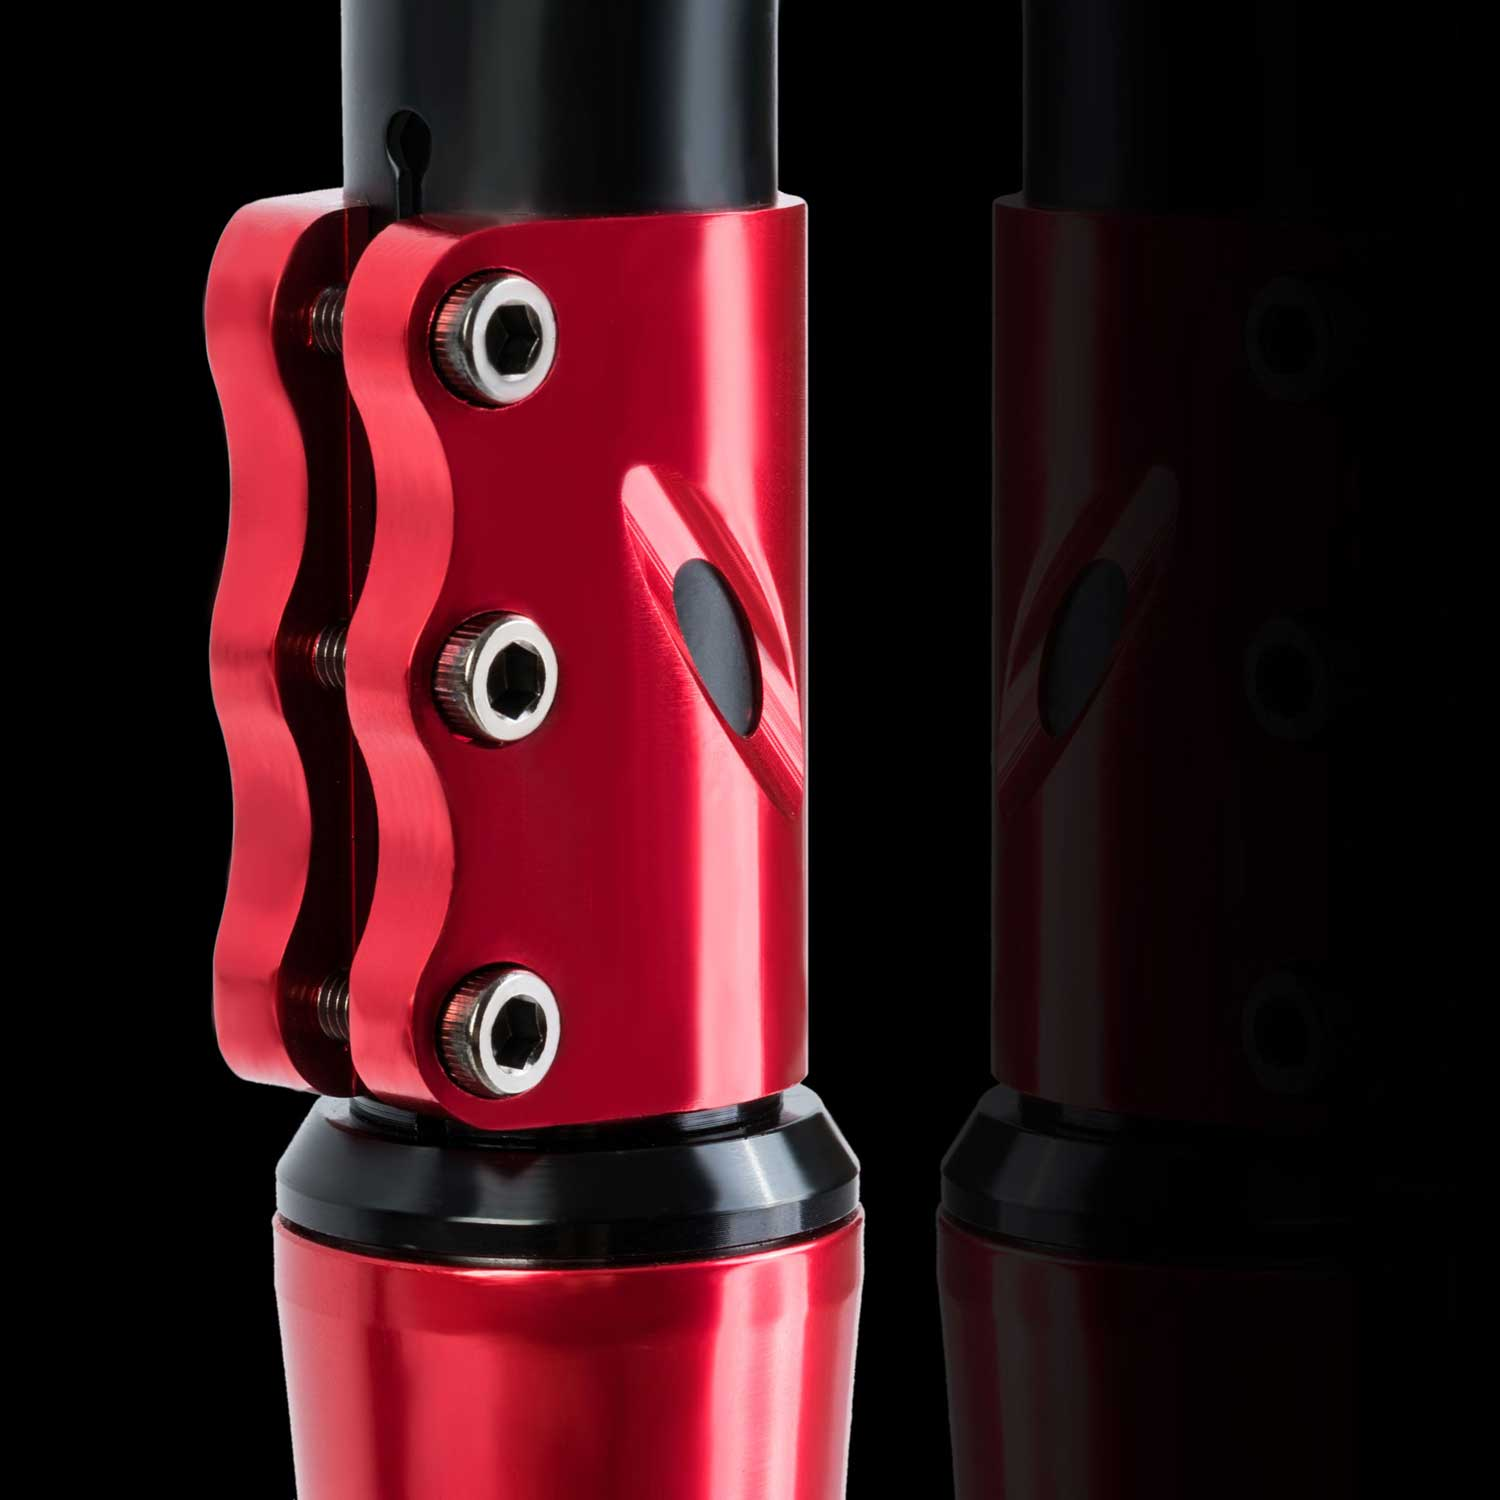 XTR red